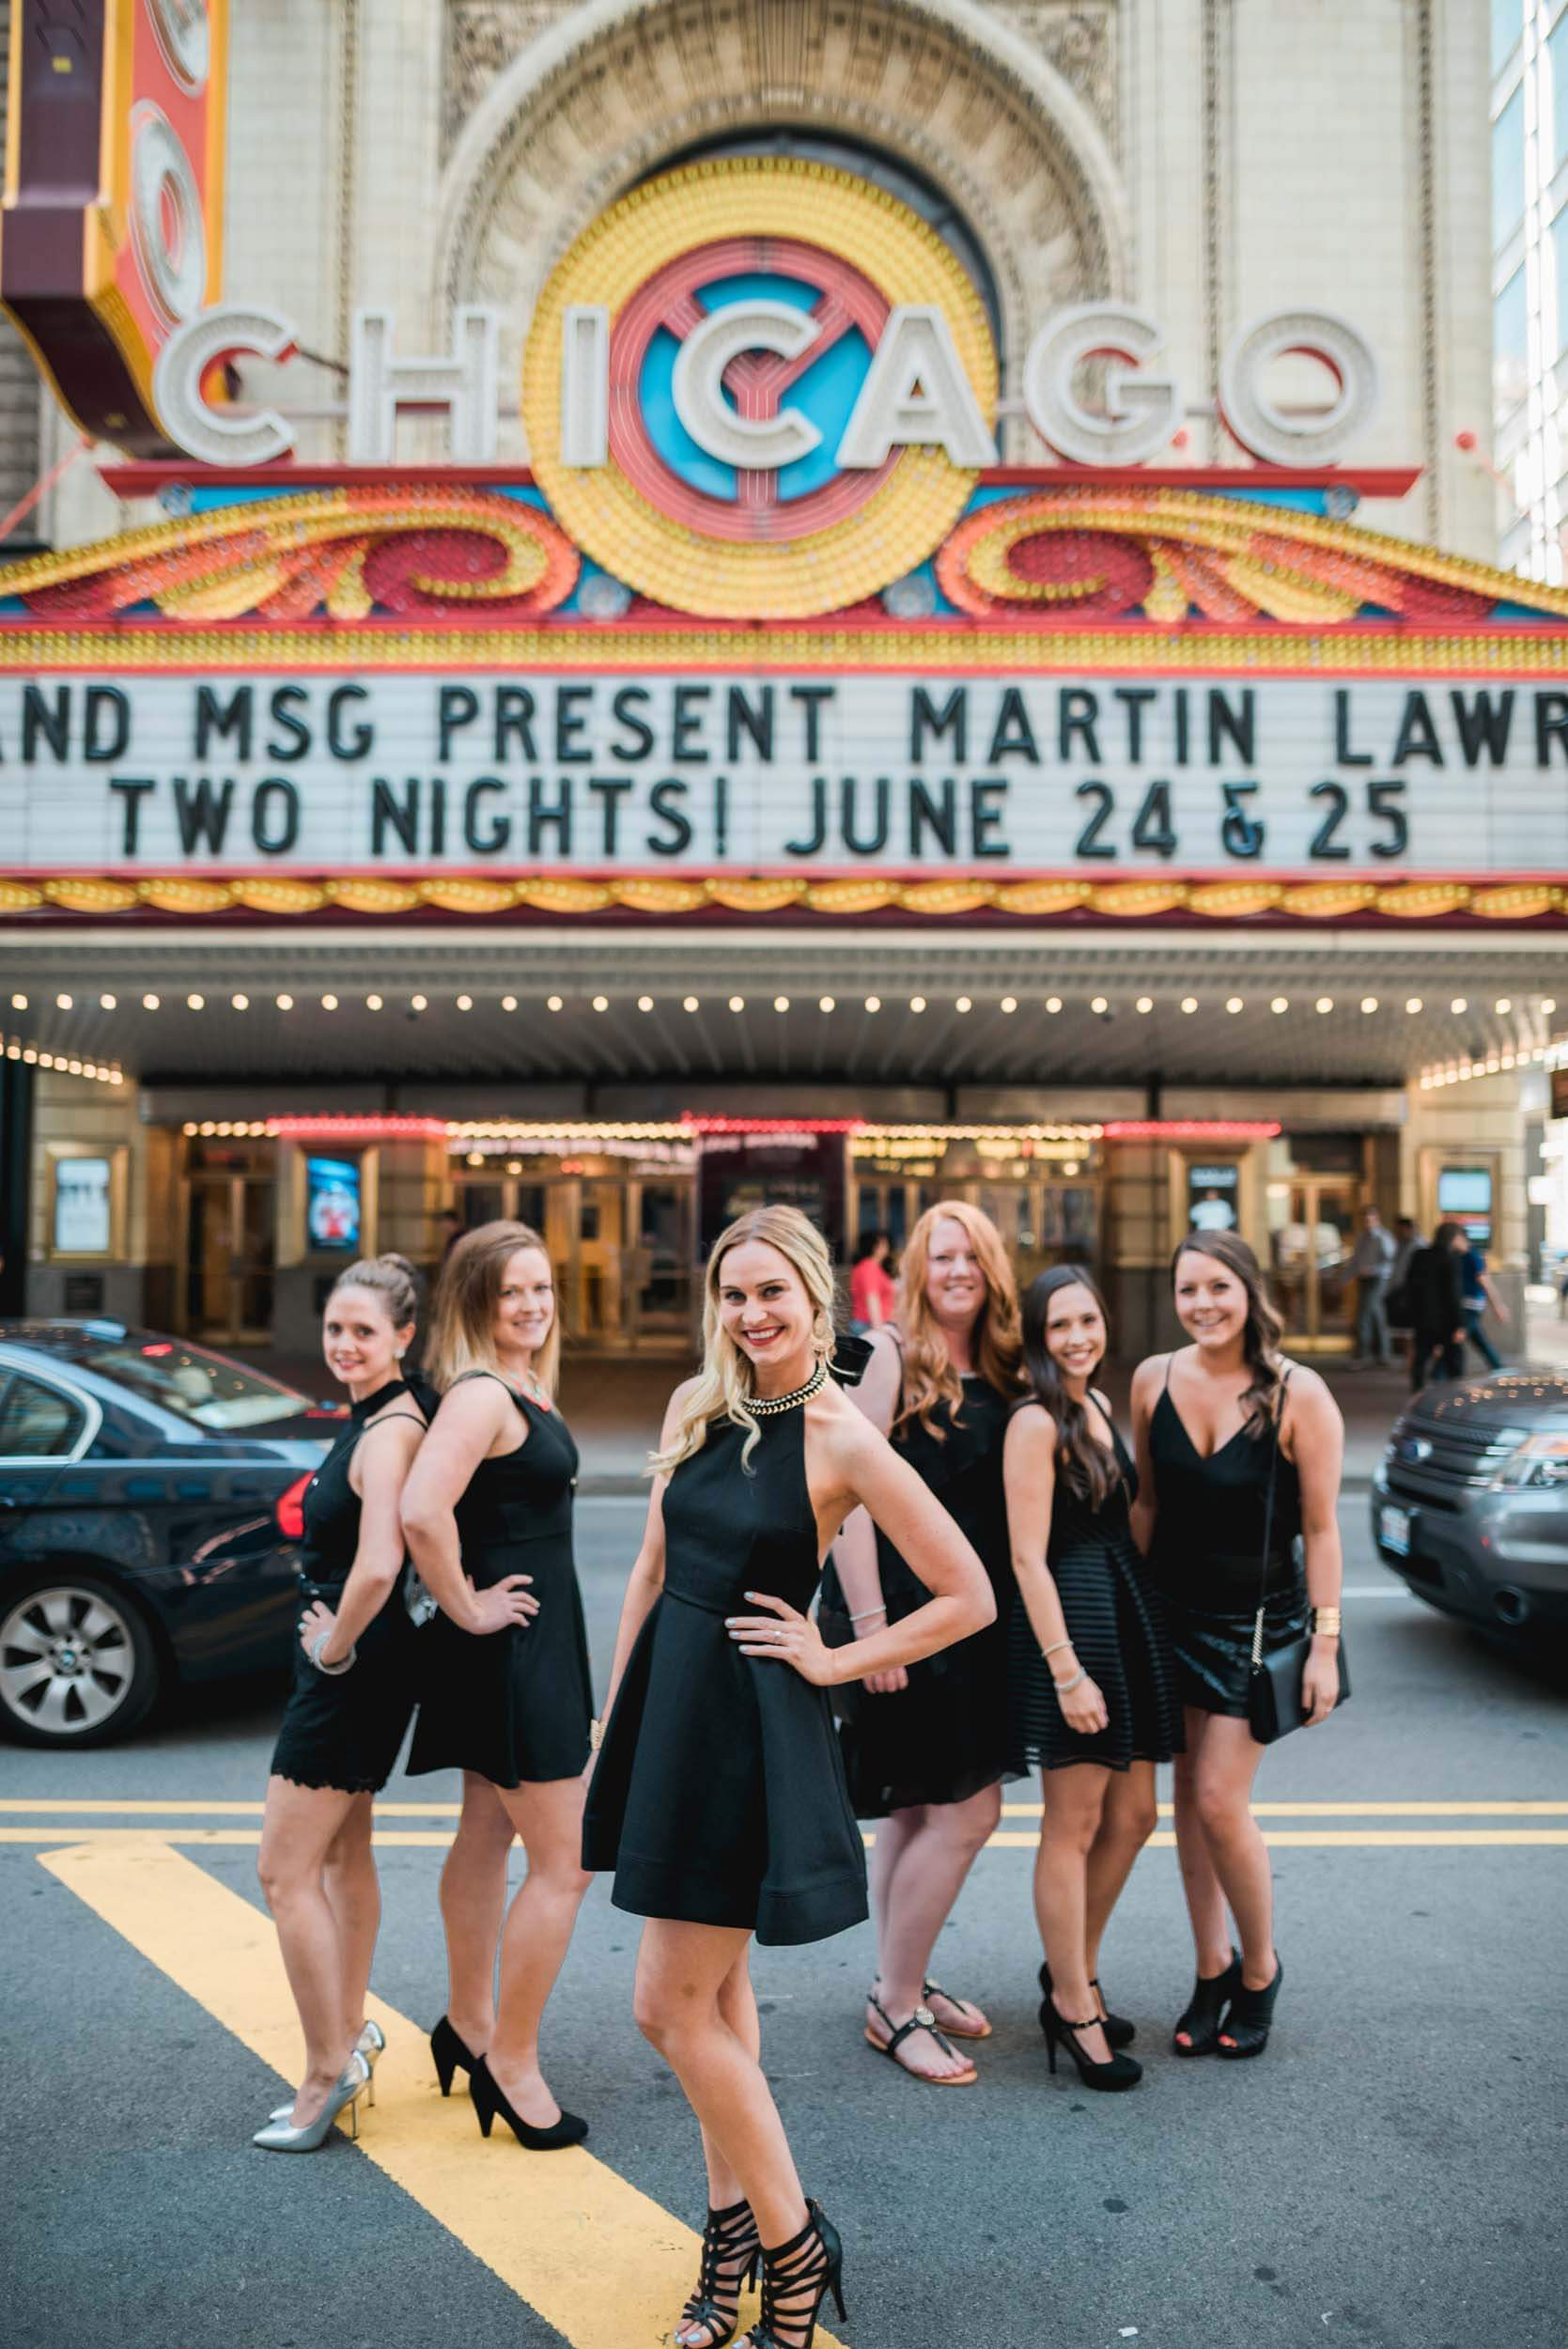 Six female friends on a bachelorette trip together in front of the Chicago theatre in Chicago, USA